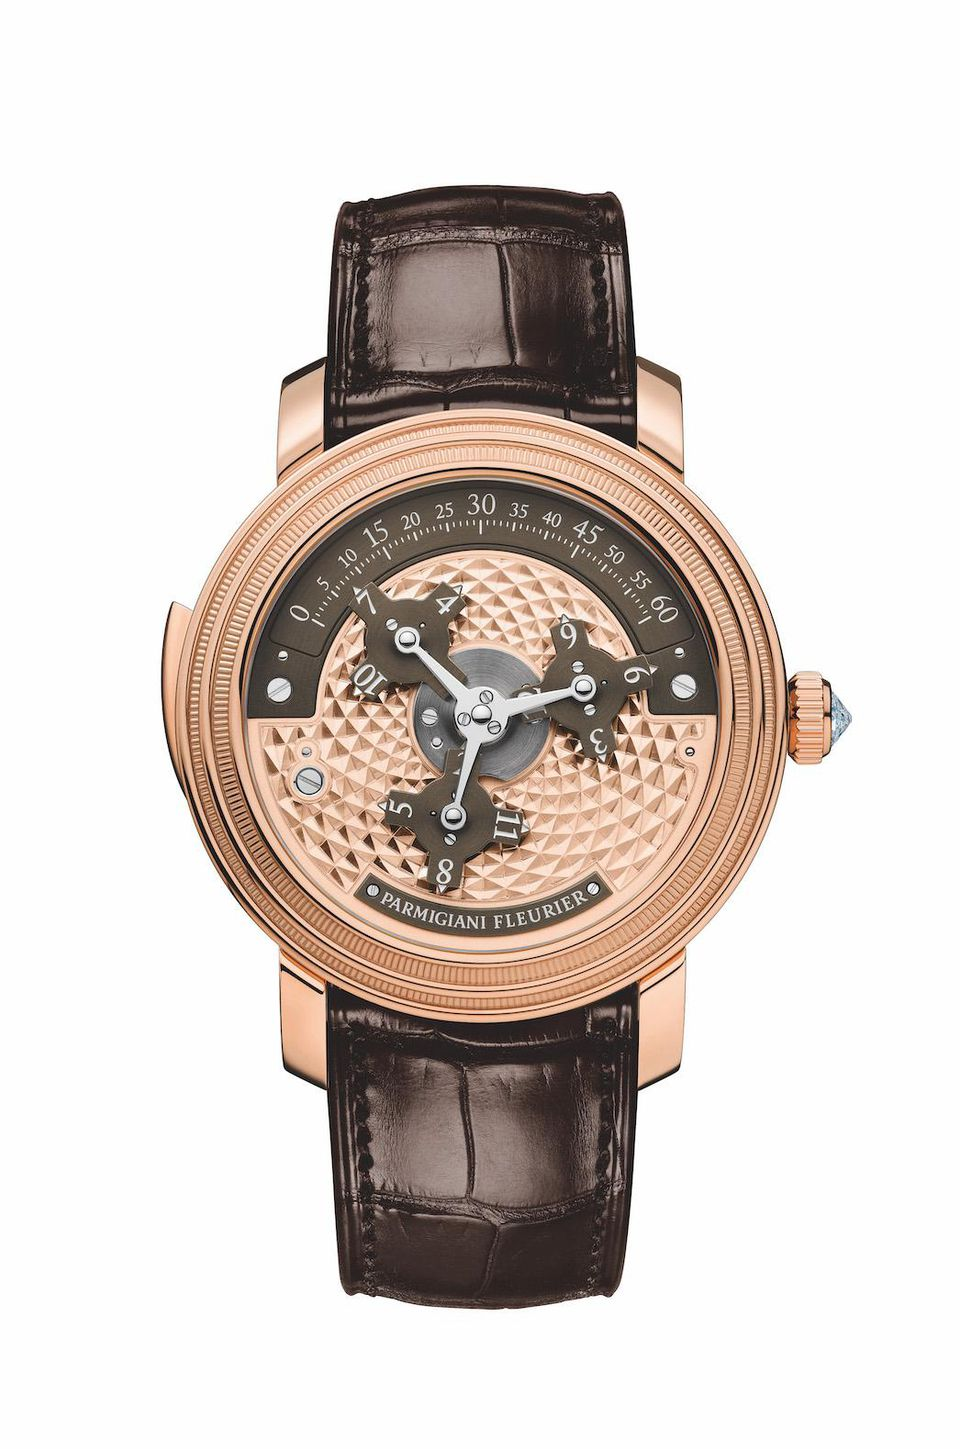 Parmigiani Fleurier Toric Capitole minute repeater watch as seen at SIHH 2019